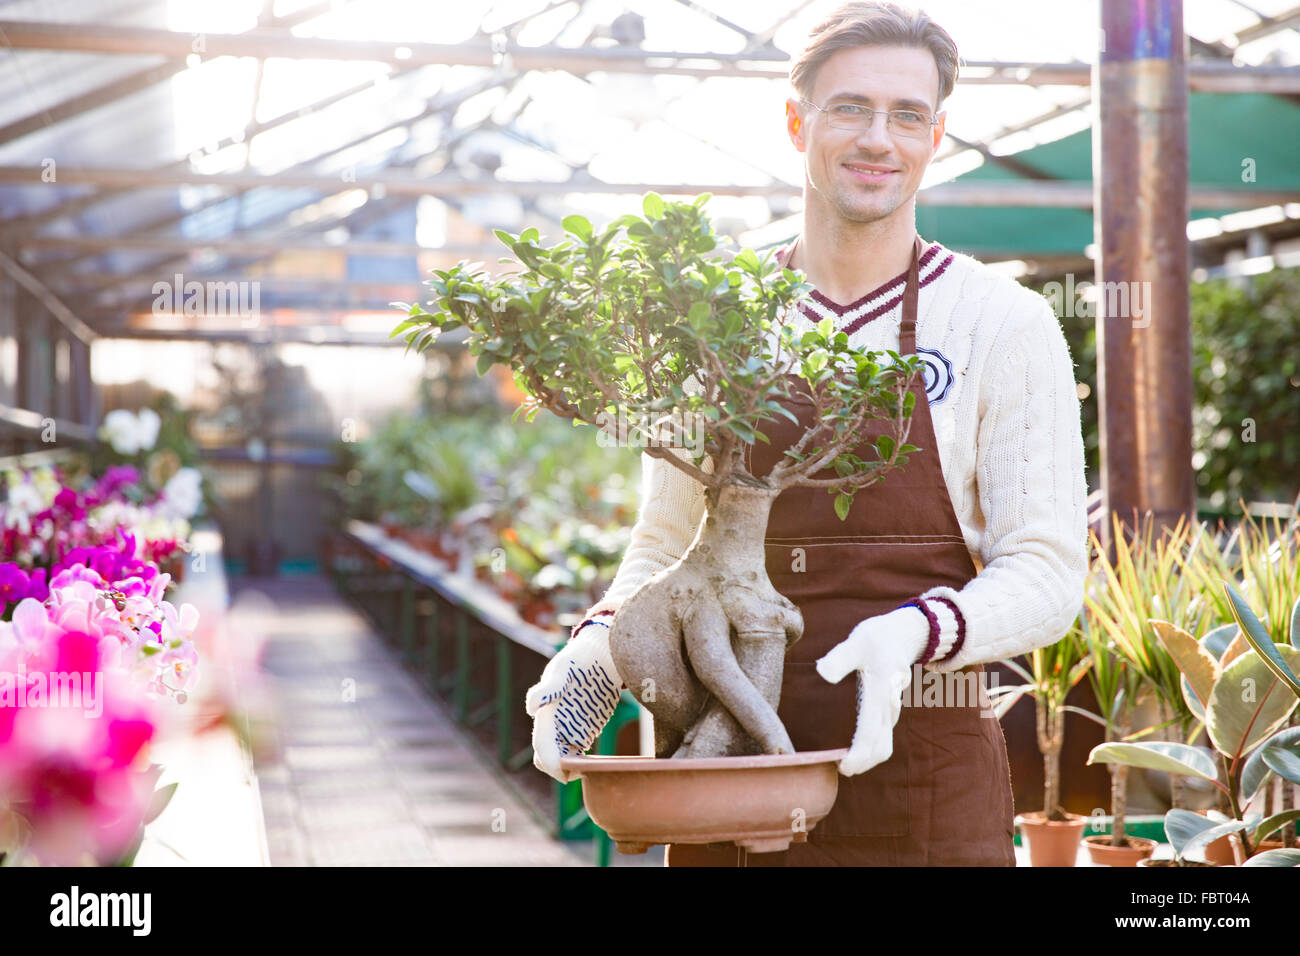 Portrait of attractive happy male gardener in apron and gloves standing and holding bonsai tree in pot in garden - Stock Image